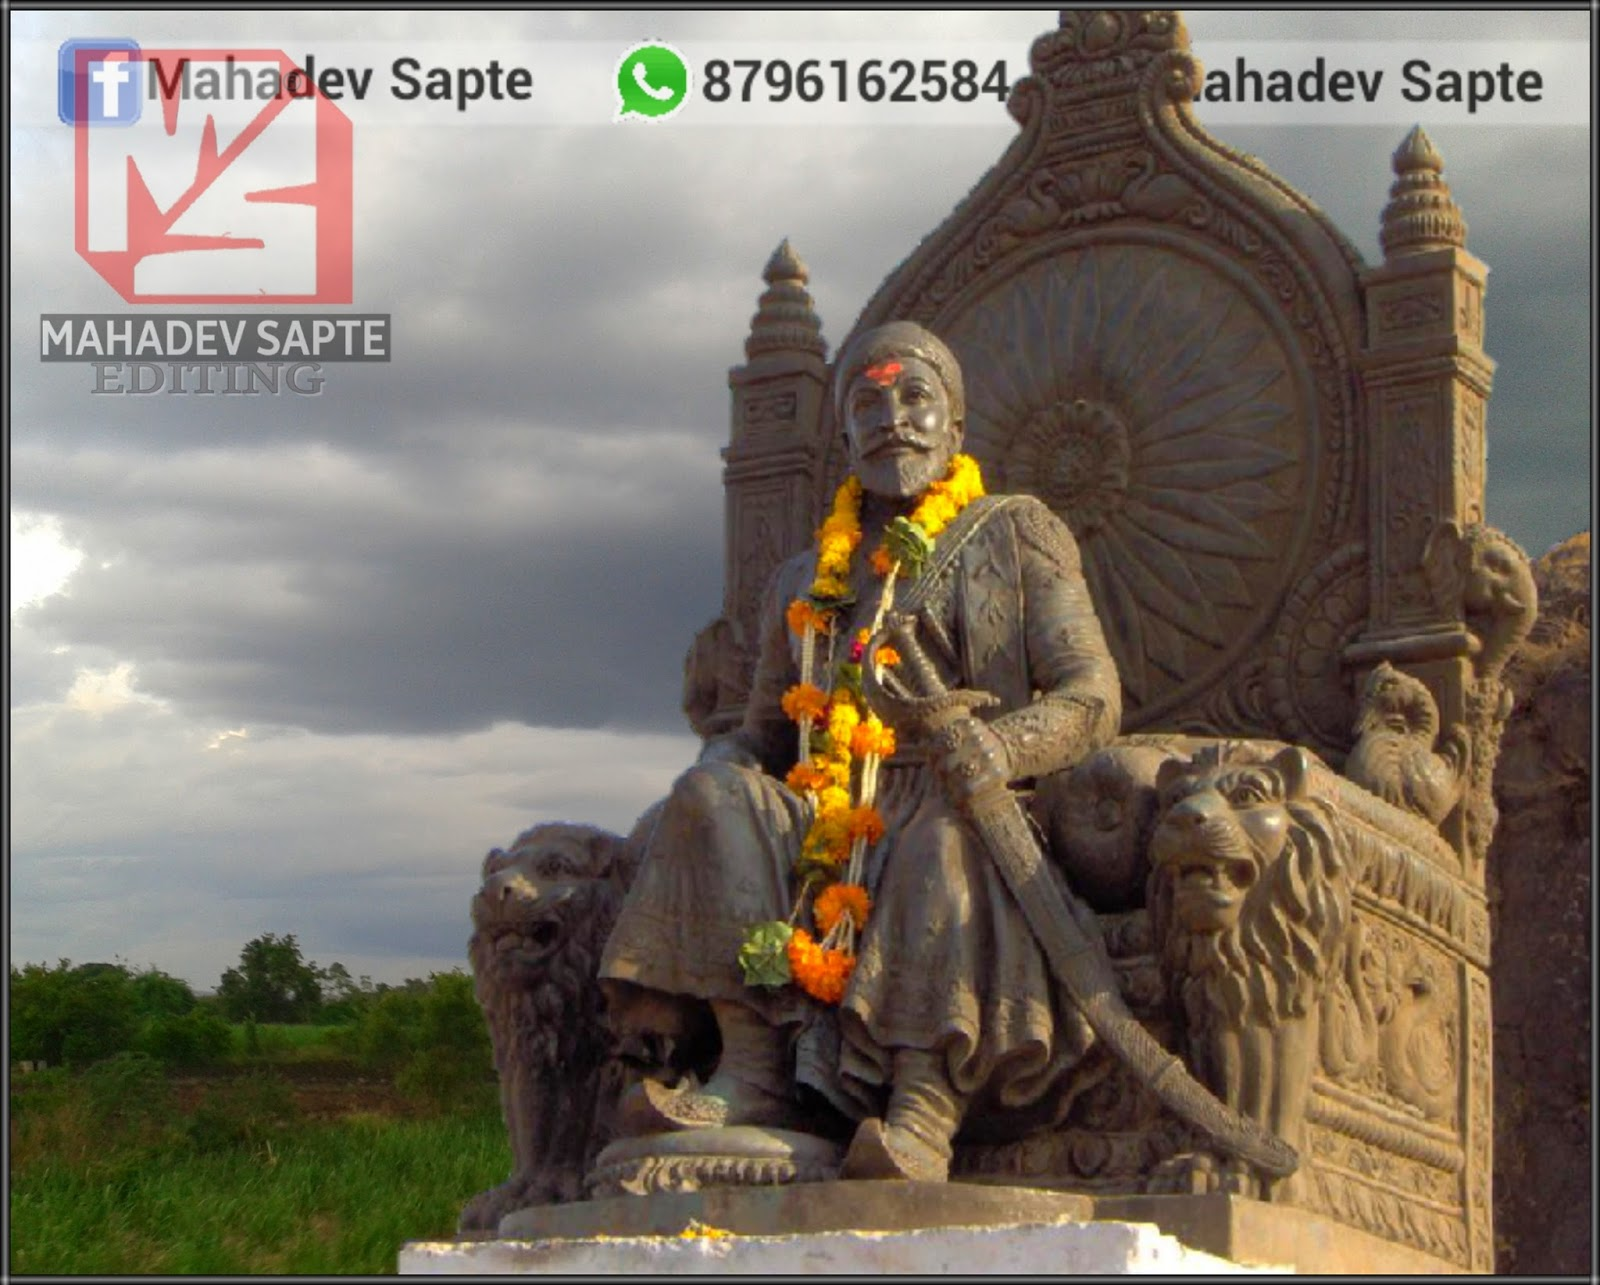 Hd wallpaper shivaji maharaj - Shivaji Maharaj New Hd Photos